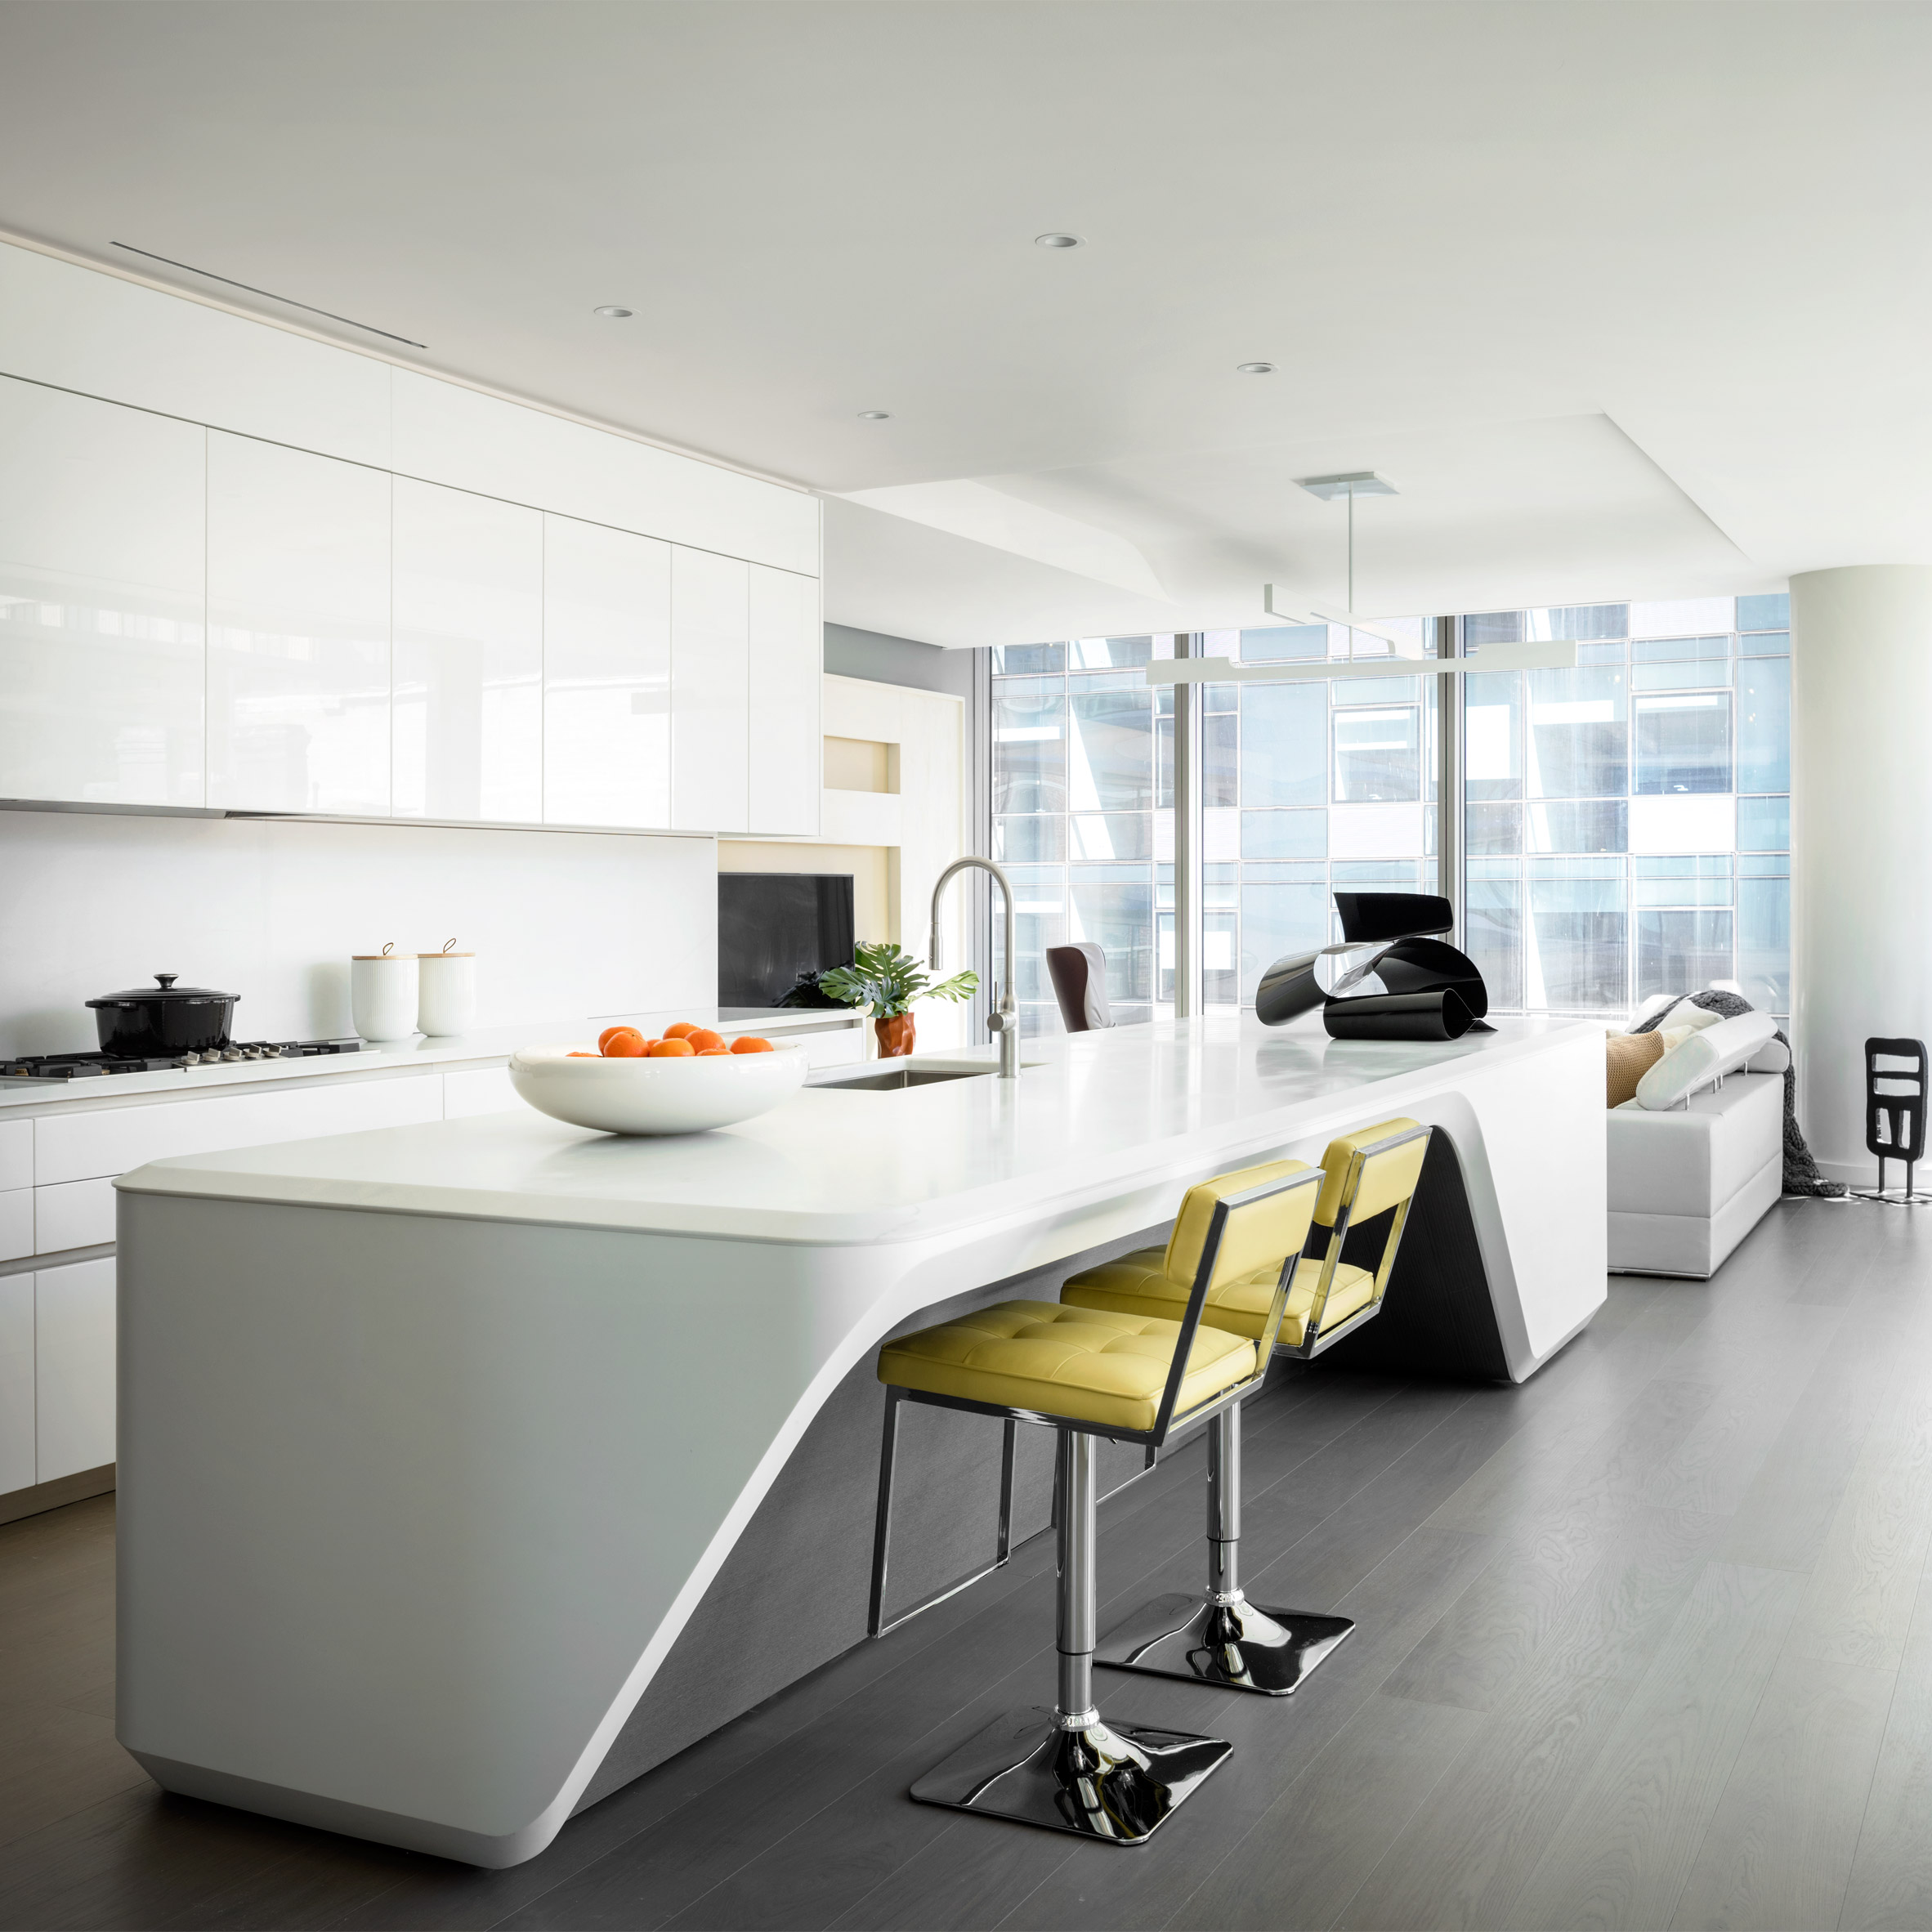 Apartement: In Pictures: Designers Equip Zaha Hadid's First New York